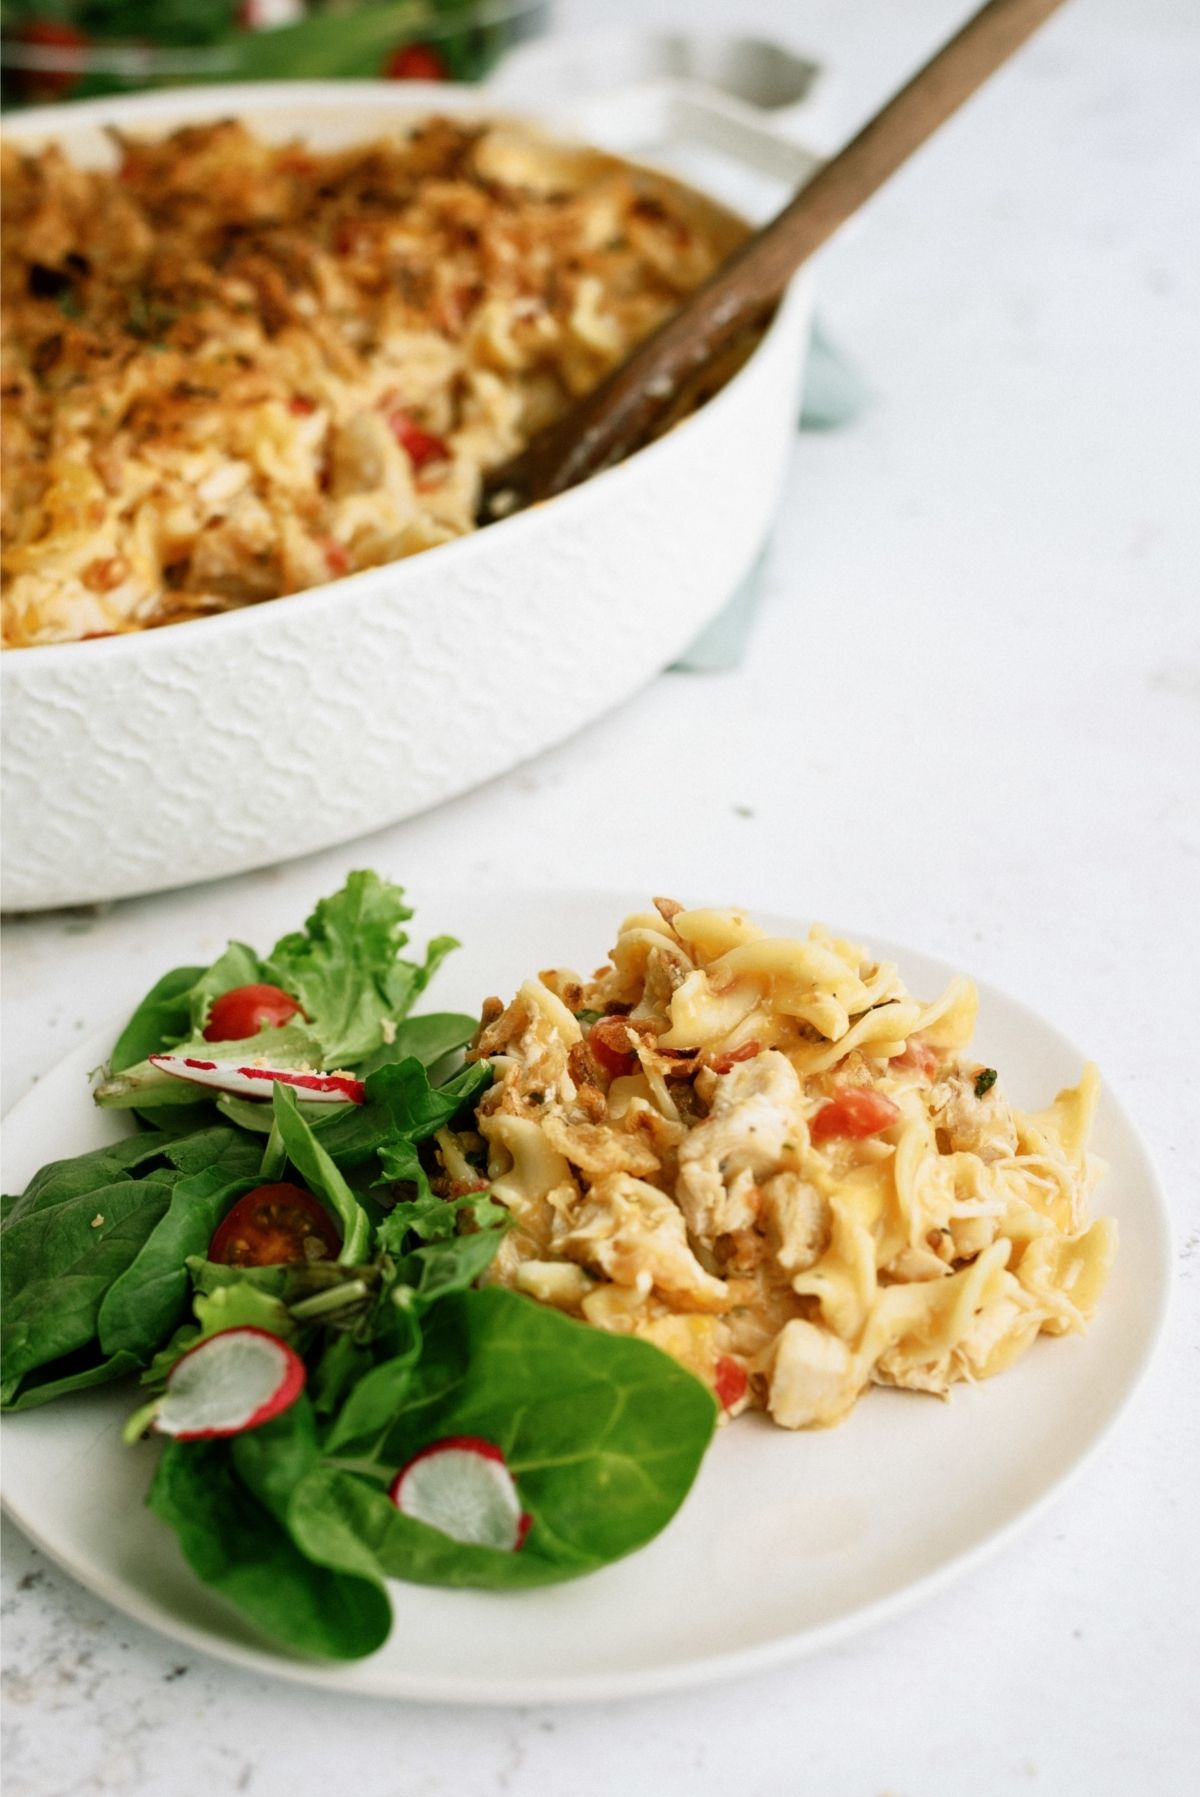 French Onion Chicken Noodle Casserole on a plate with a side salad